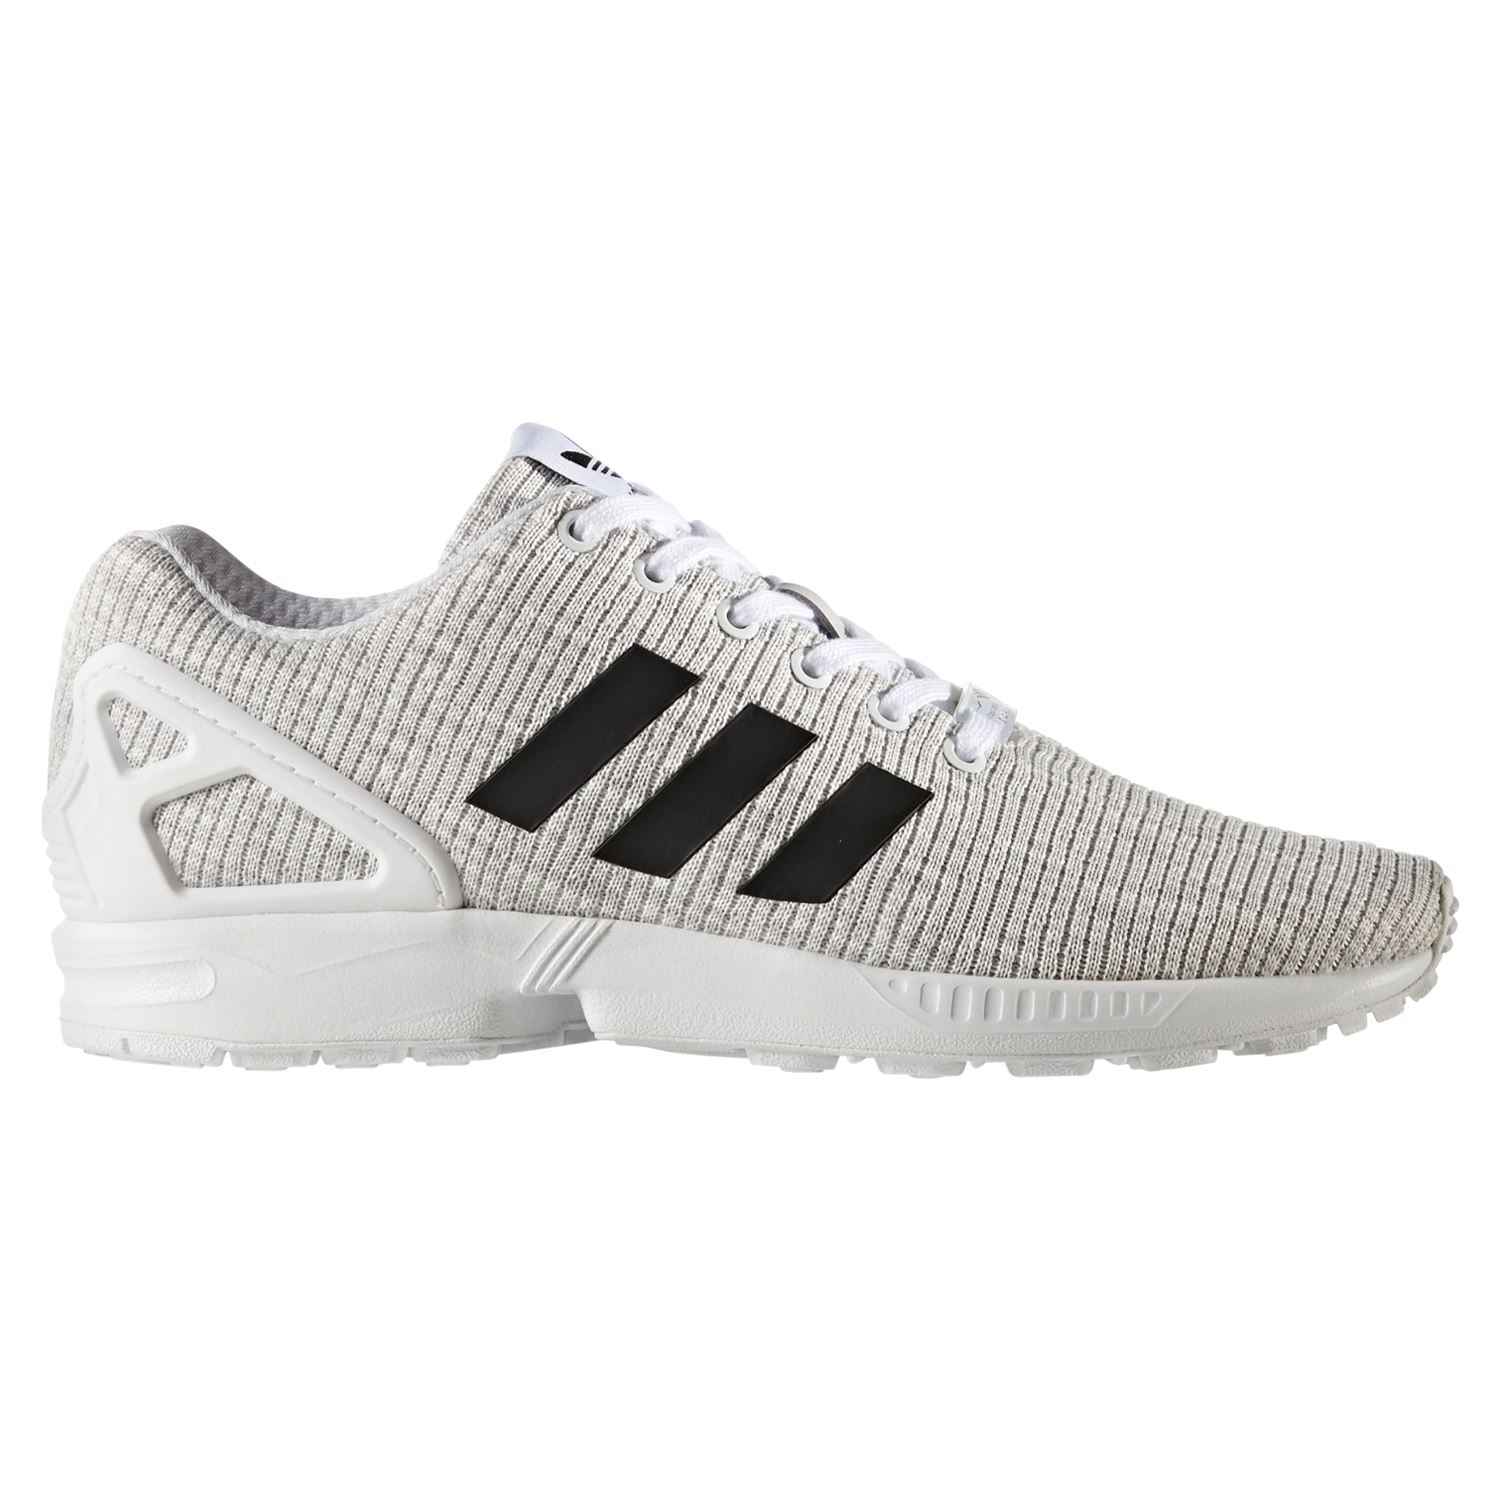 45eaaf5d3 Details about adidas ORIGINALS MEN S ZX FLUX TRAINERS SHOES SNEAKERS WHITE  GYM COMFY NEW BNWT